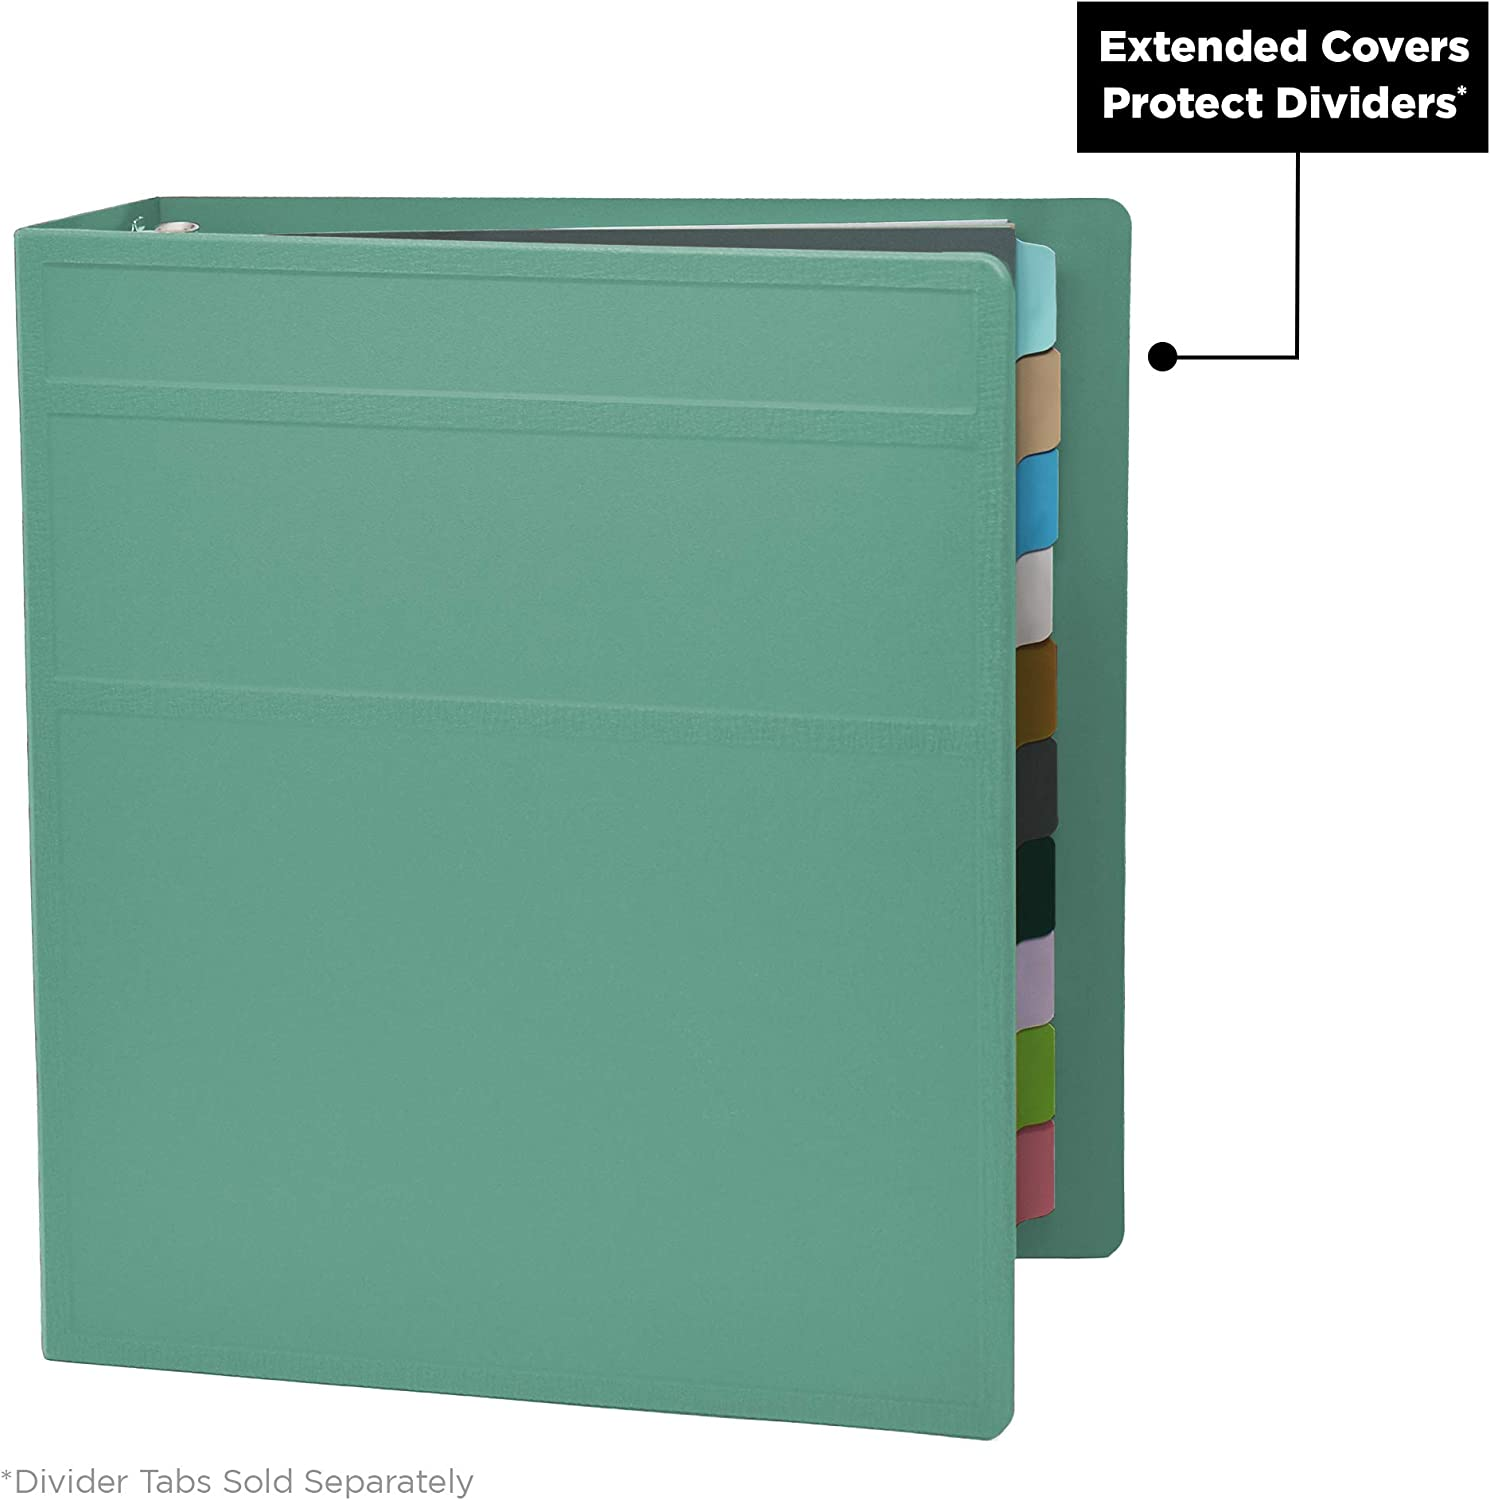 Inch Heavy Duty 3-Ring Binder Side Opening Ash Gray Carstens 3